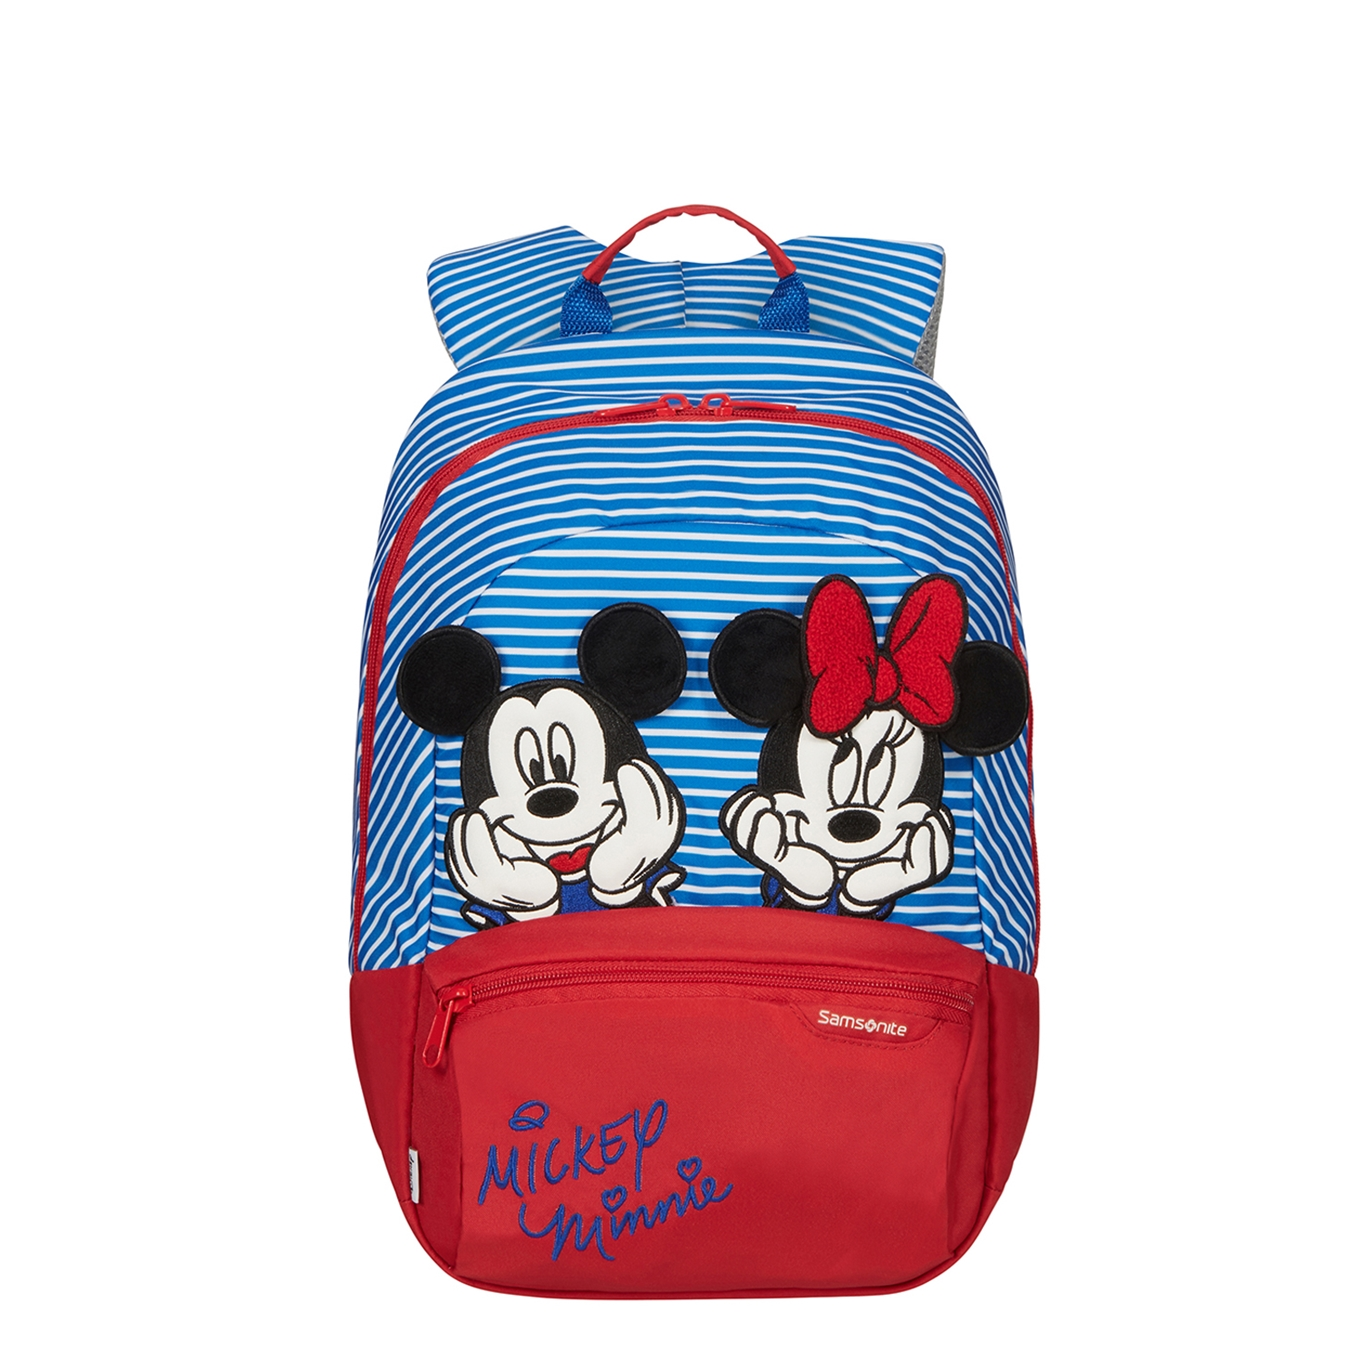 Samsonite Disney Ultimate 2.0 Backpack S+ disney stripes